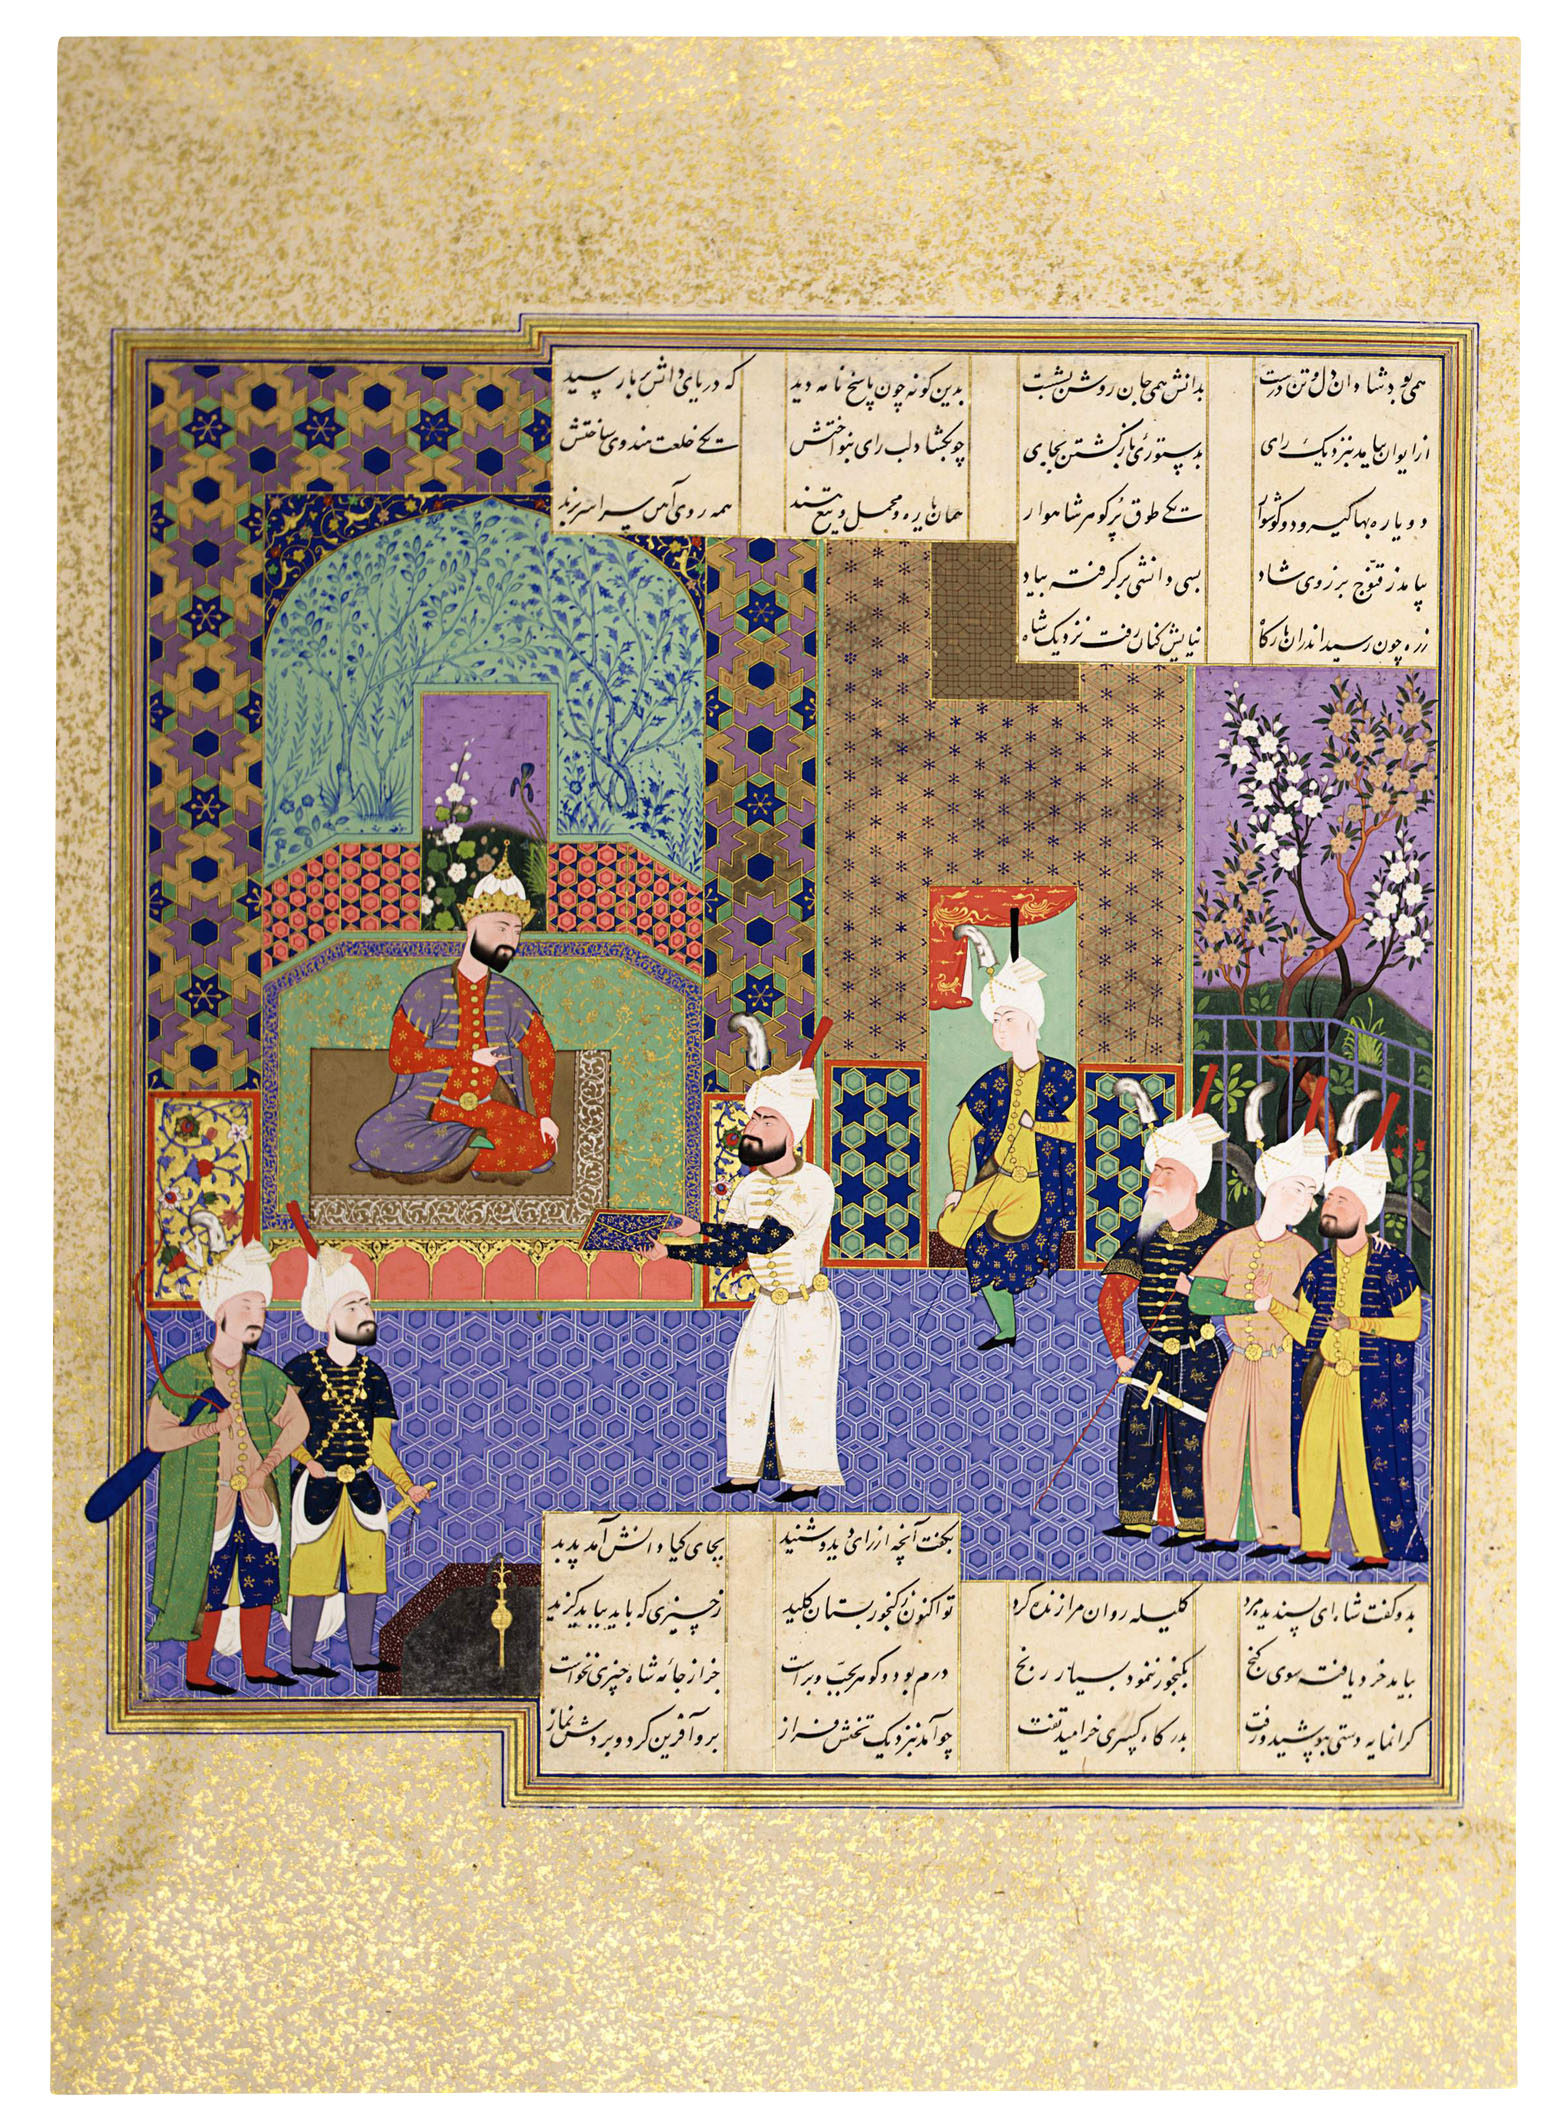 http://www.finebooksmagazine.com/issue/0502/graphics/large/7-shahnama.jpg